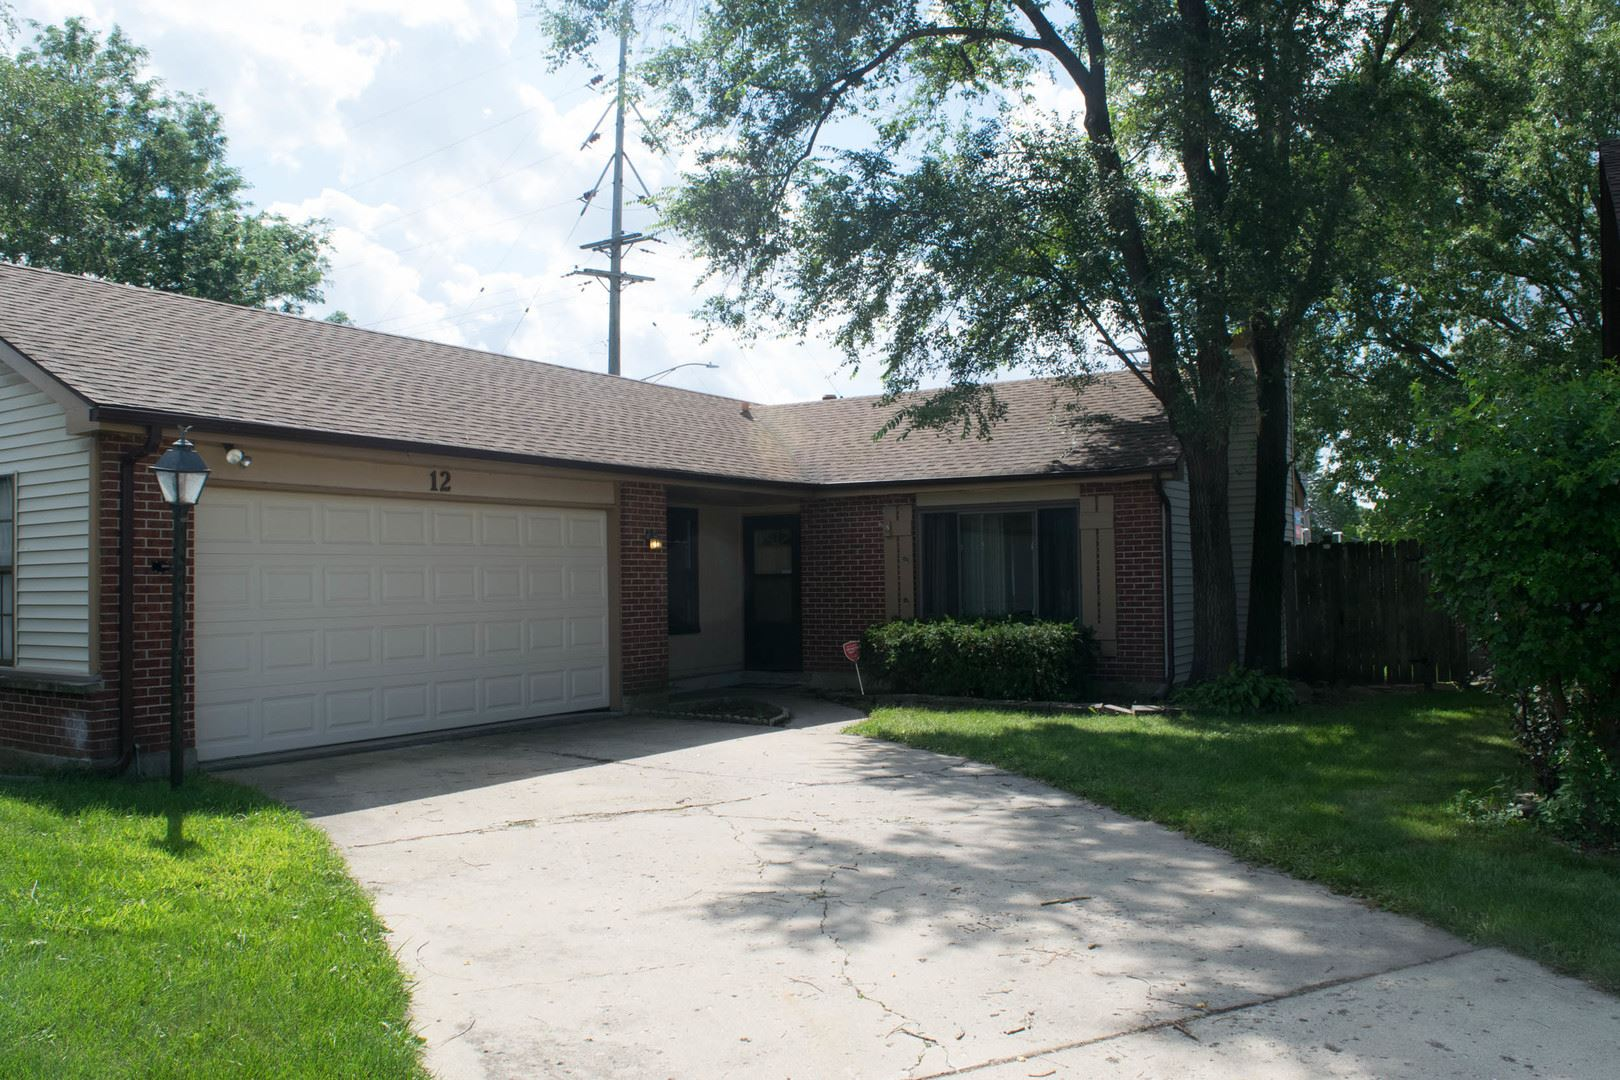 12 Southbury Court, Streamwood, IL 60107 - #: 10724131